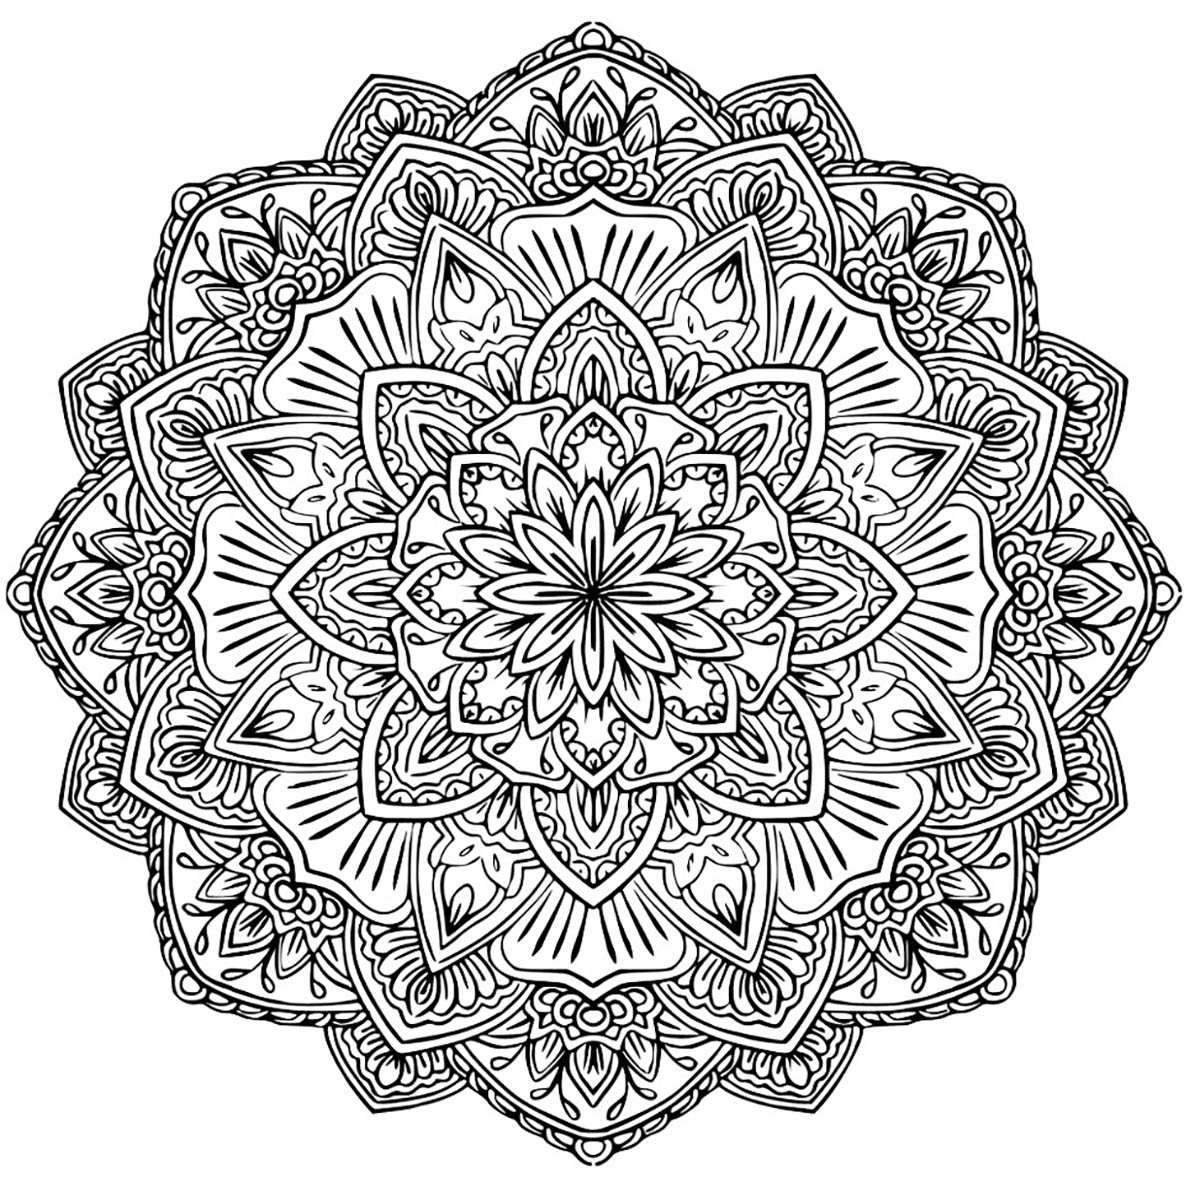 free printable mandalas to color for adults free printable mandala coloring pages for adults best adults to free mandalas for printable color